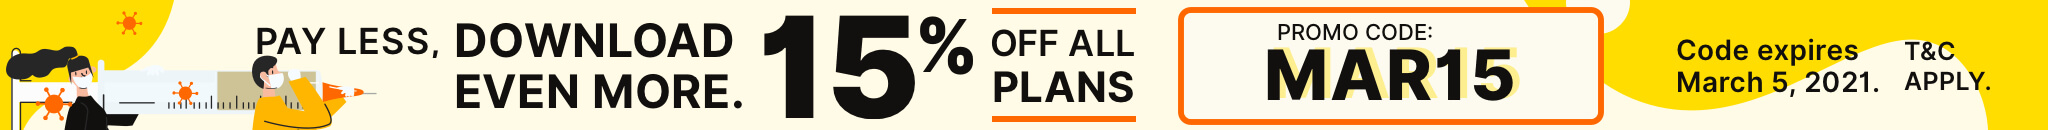 15% Off all plans with promo code MAR15